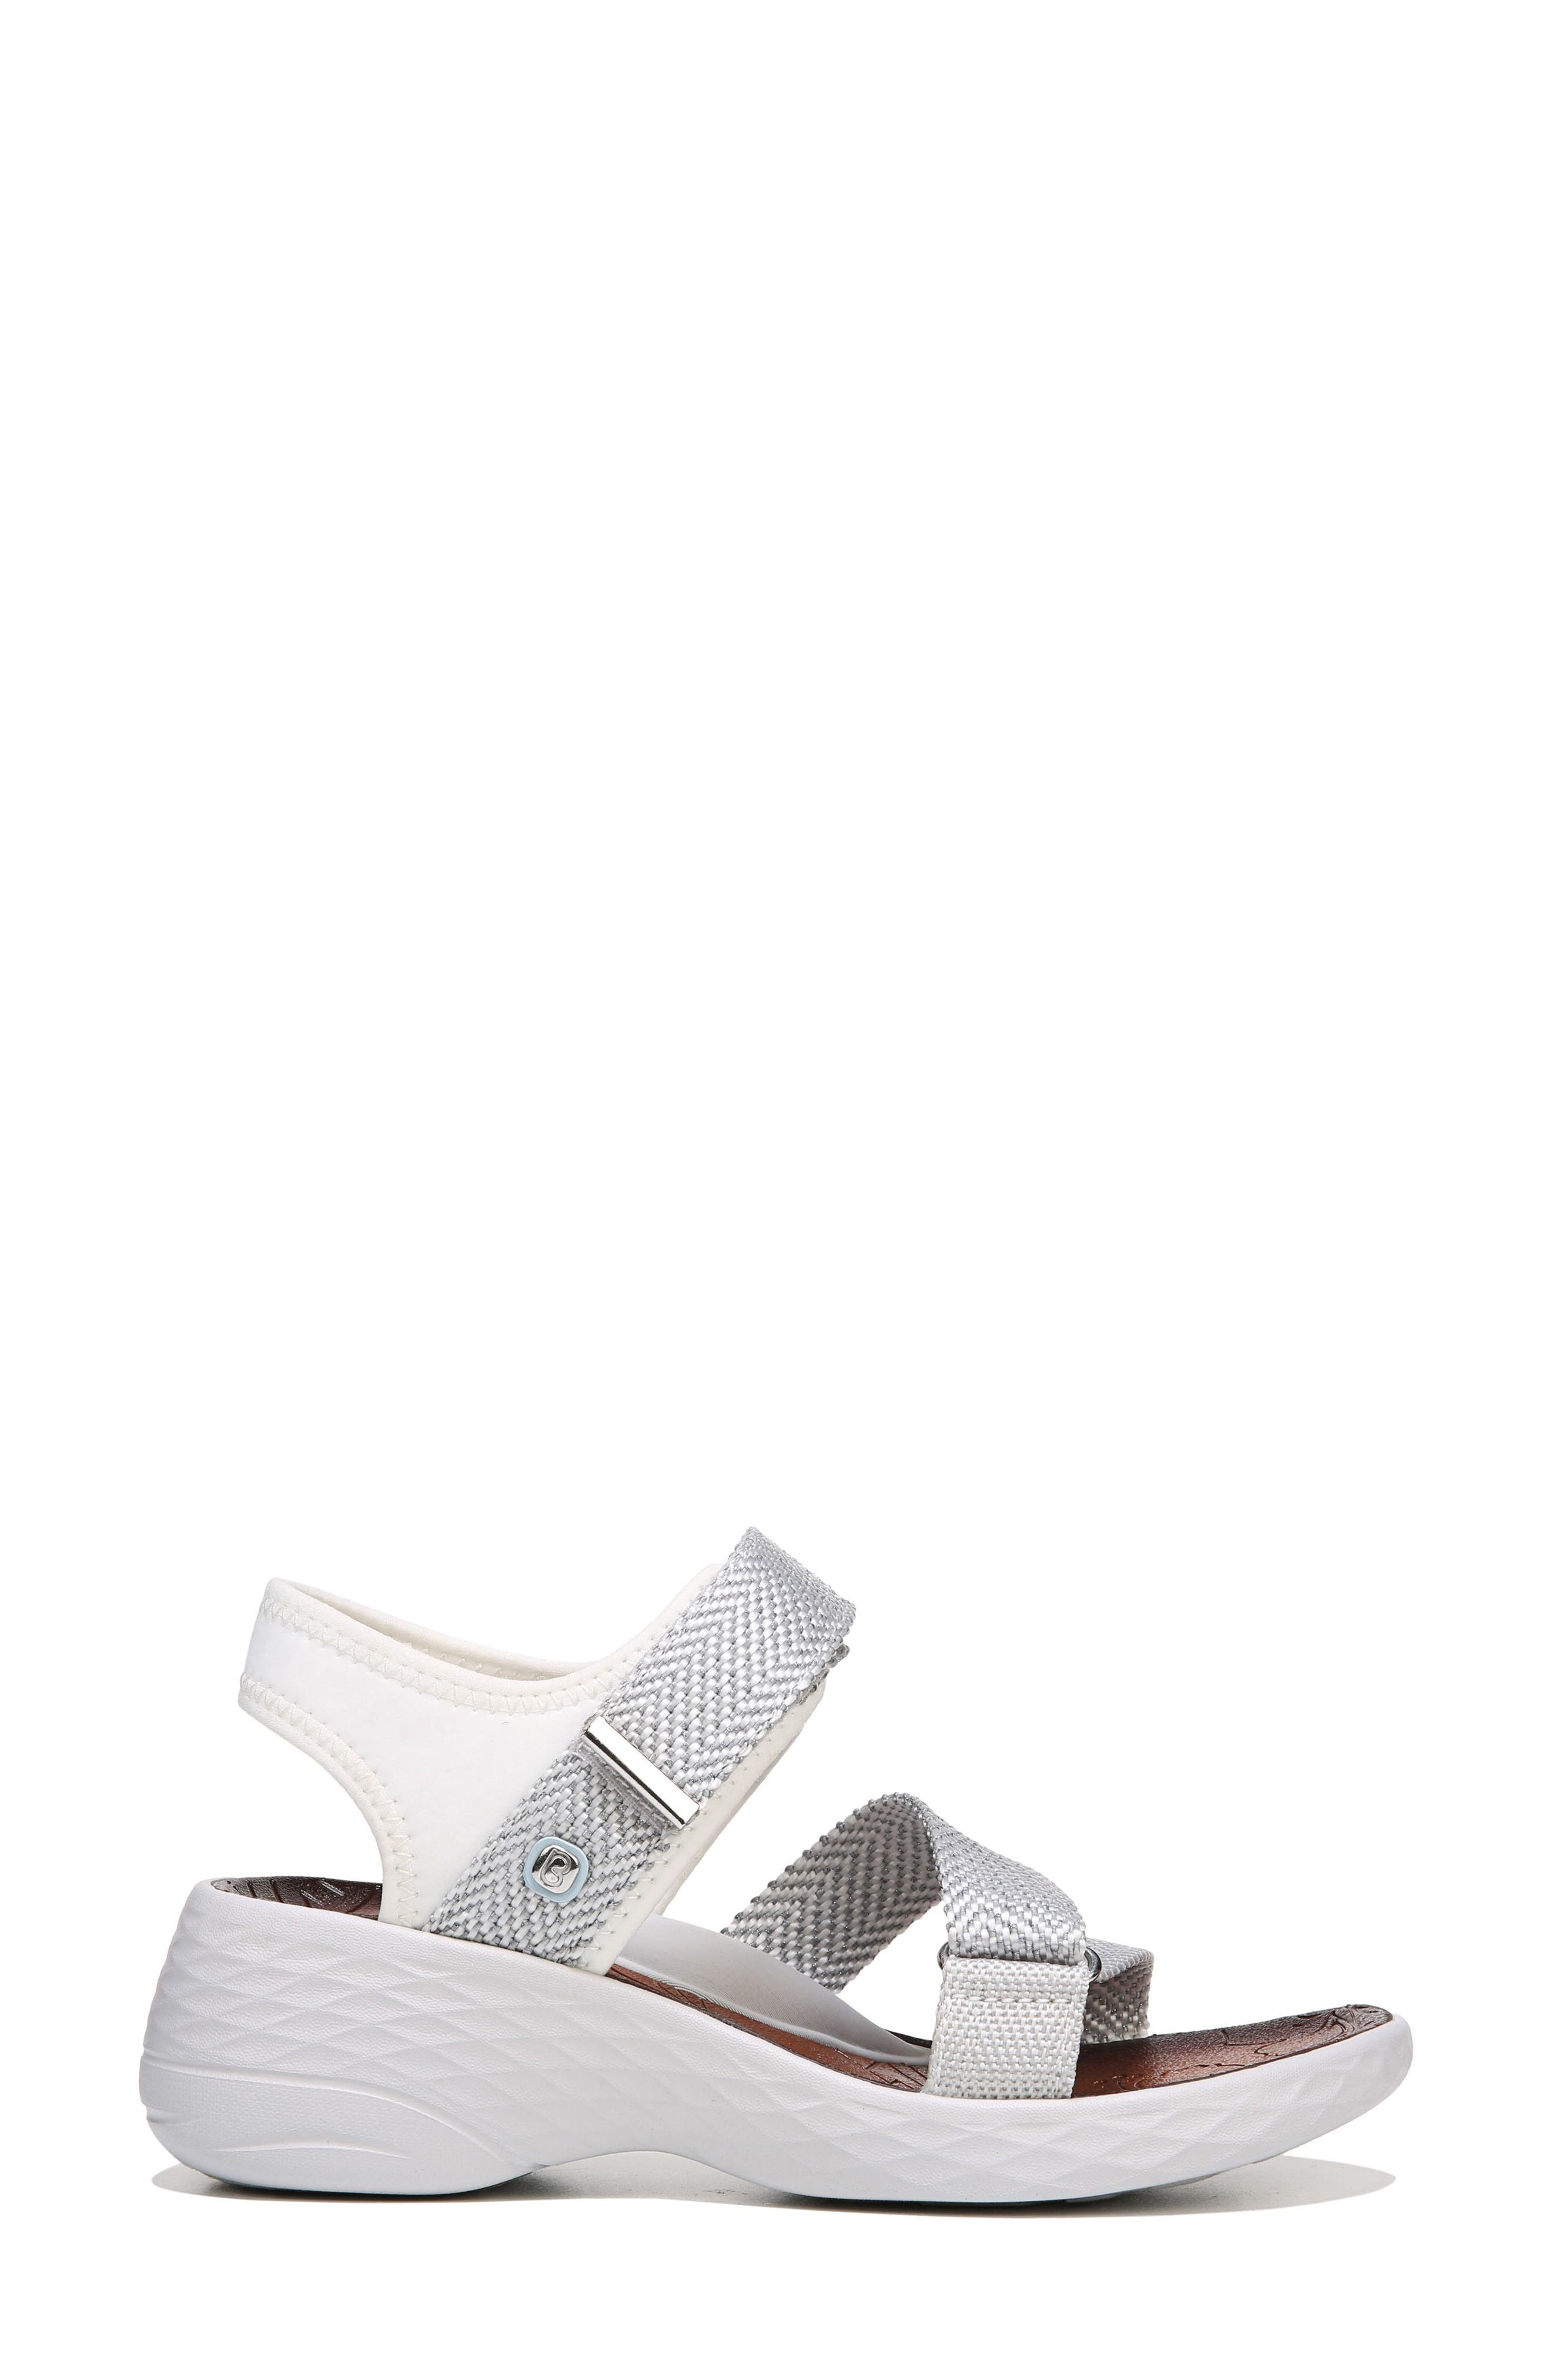 Jive Sandal,                             Alternate thumbnail 4, color,                             White Fabric